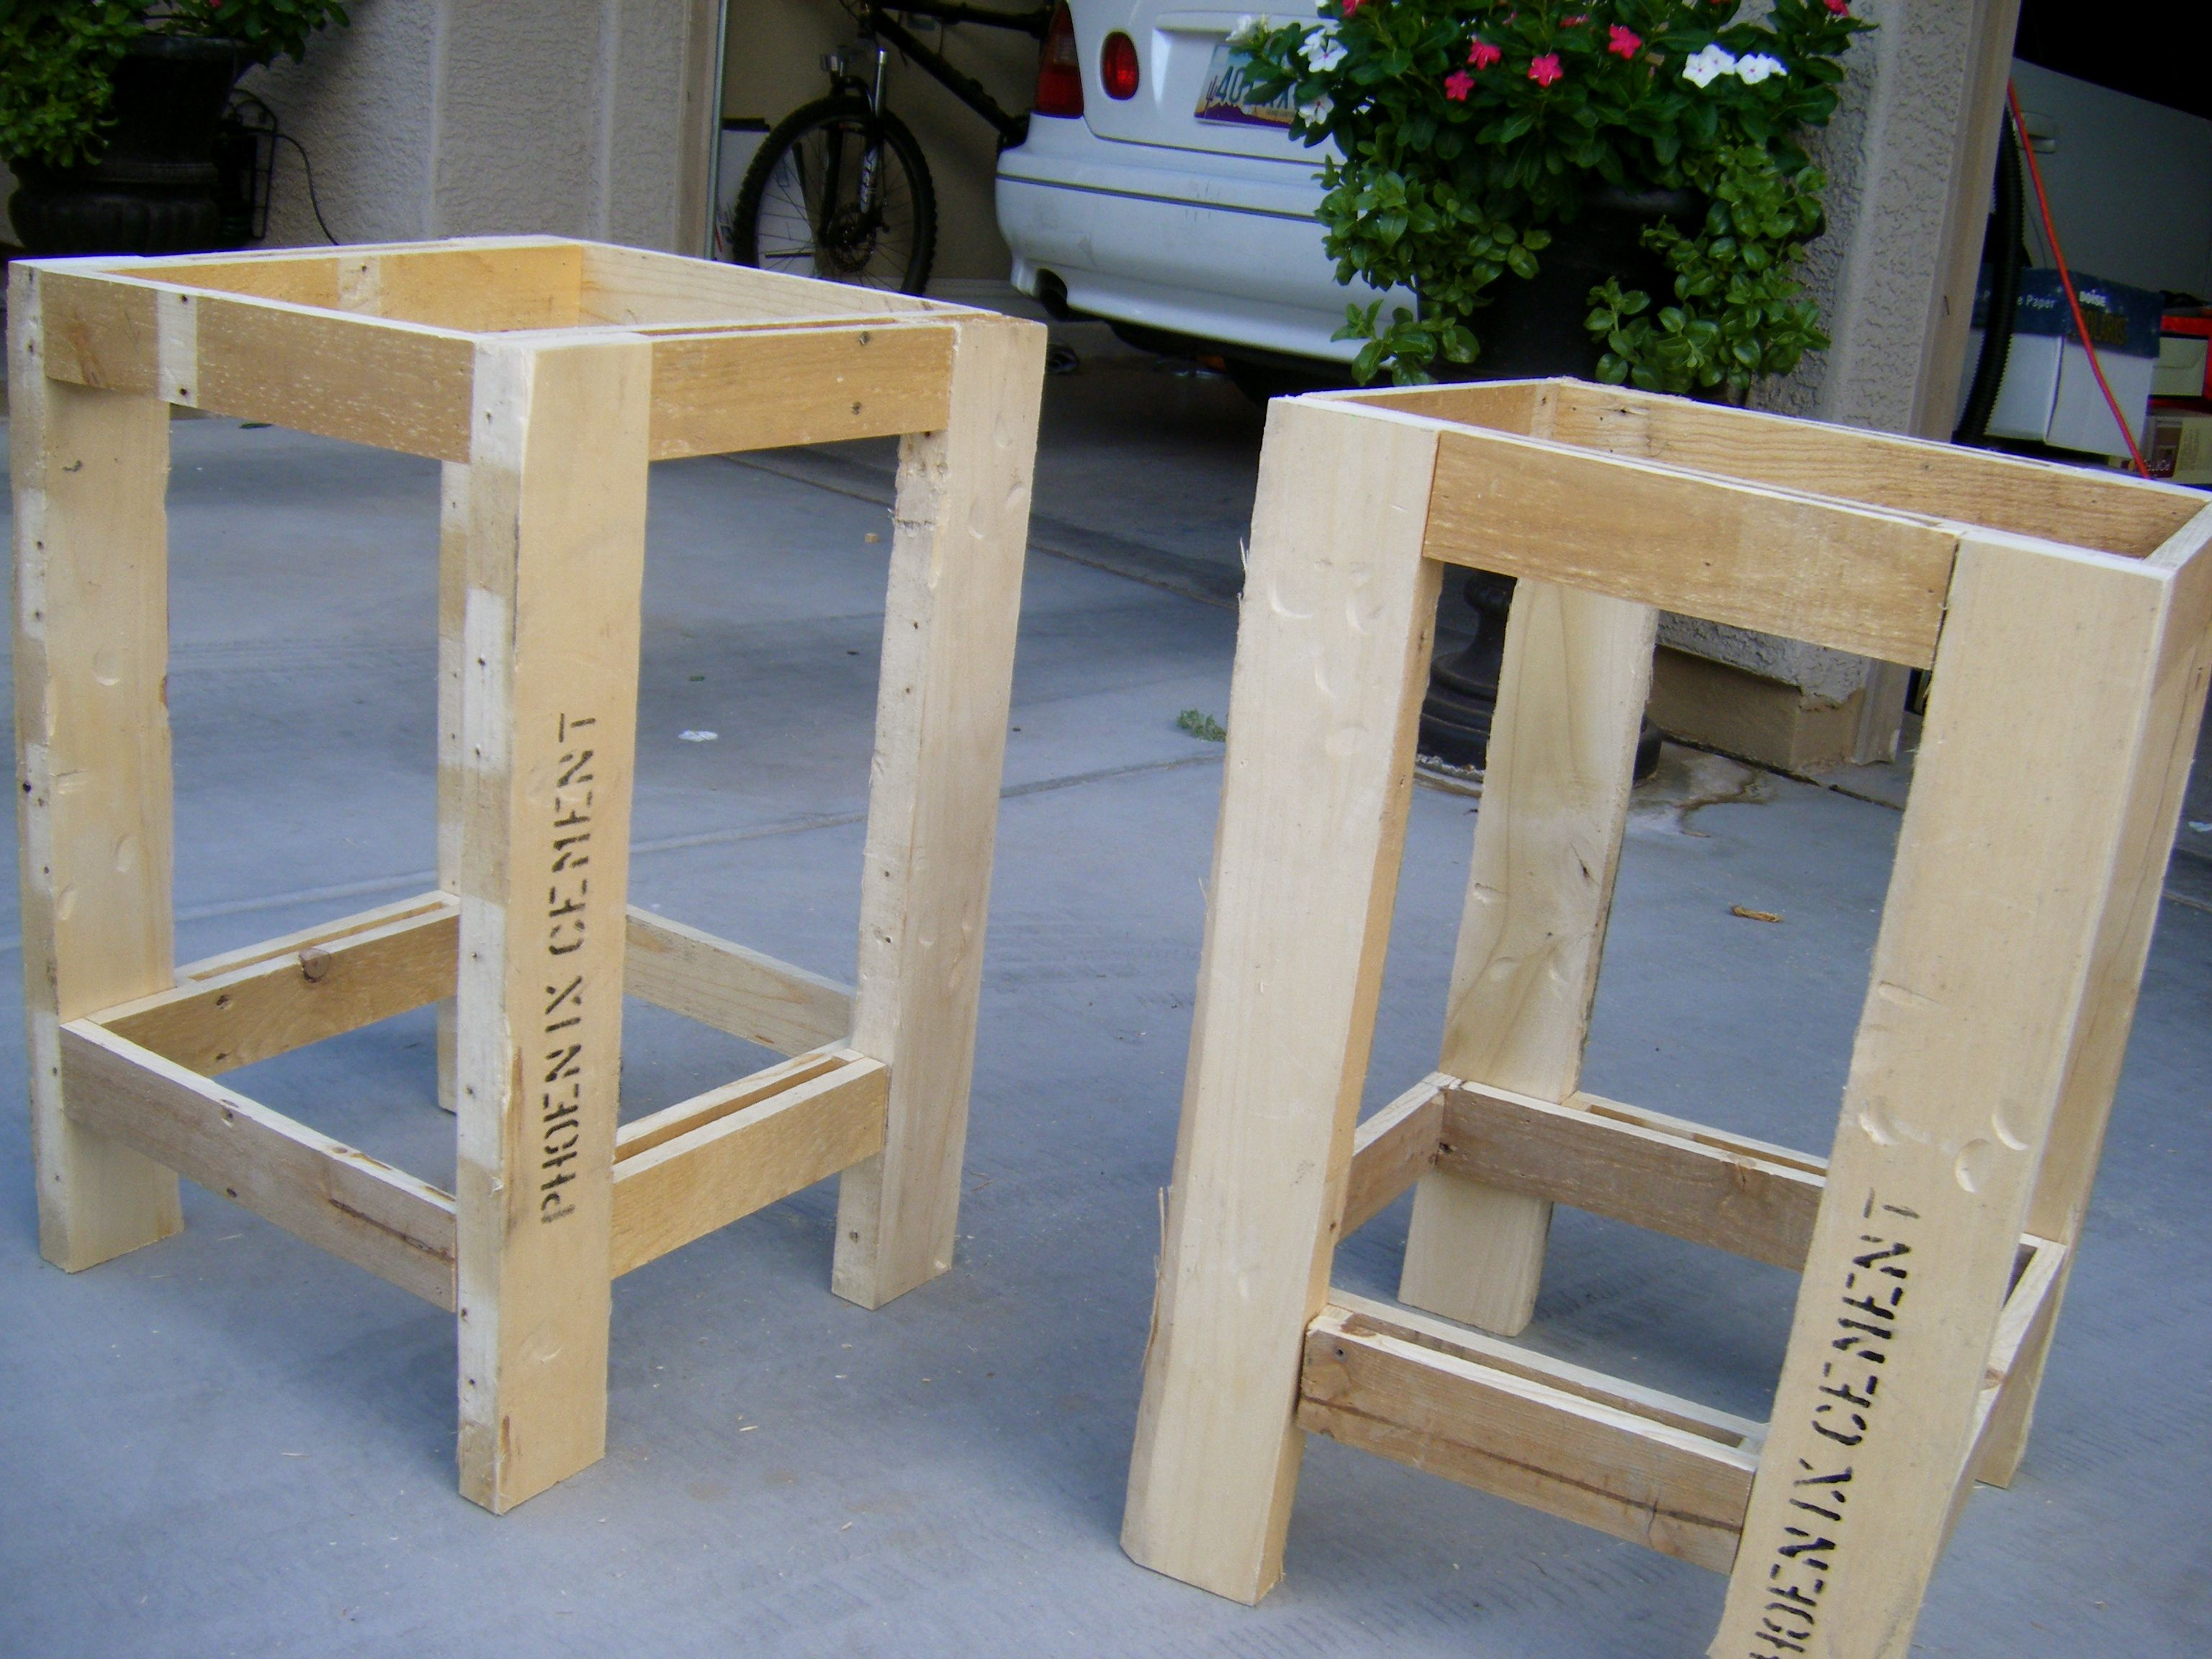 pallet table plans made these side tables for our master bedroom rh pinterest com pallet dining table plans pallet table plans wedding